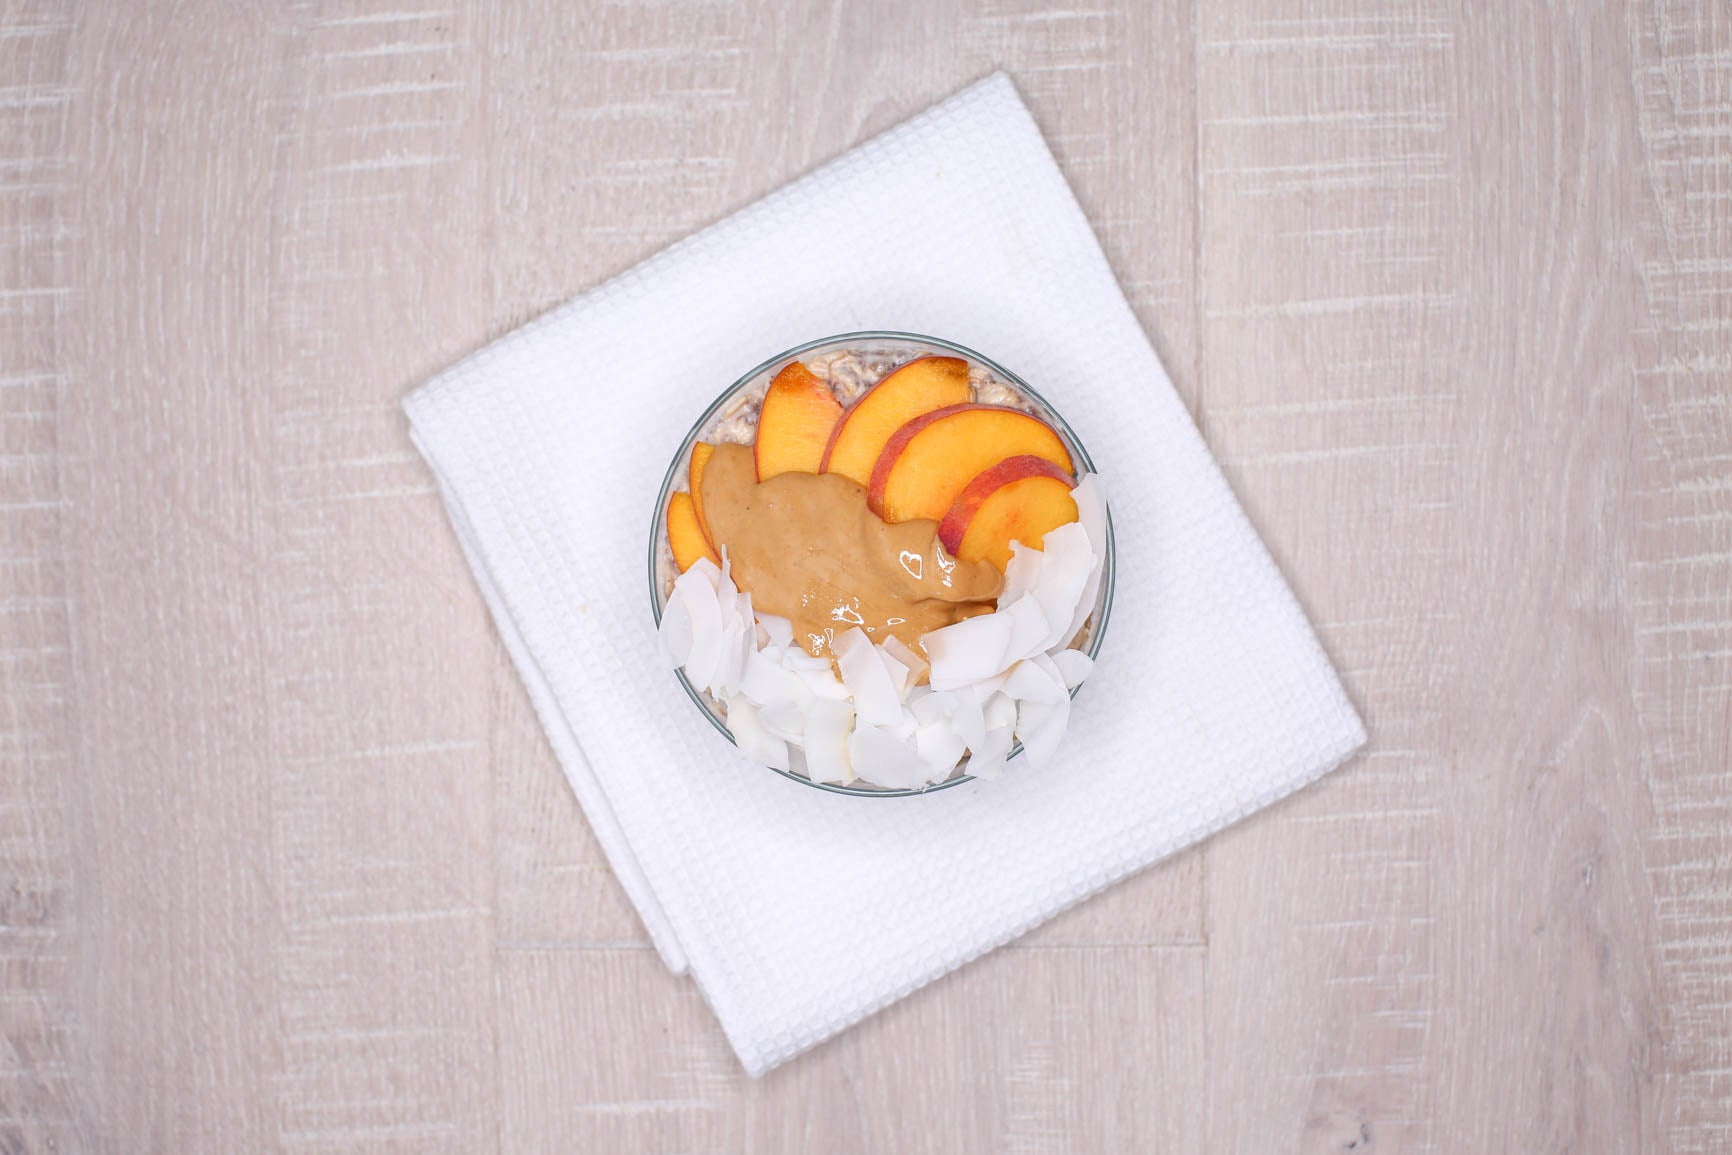 Peaches & Cream Overnight Oats